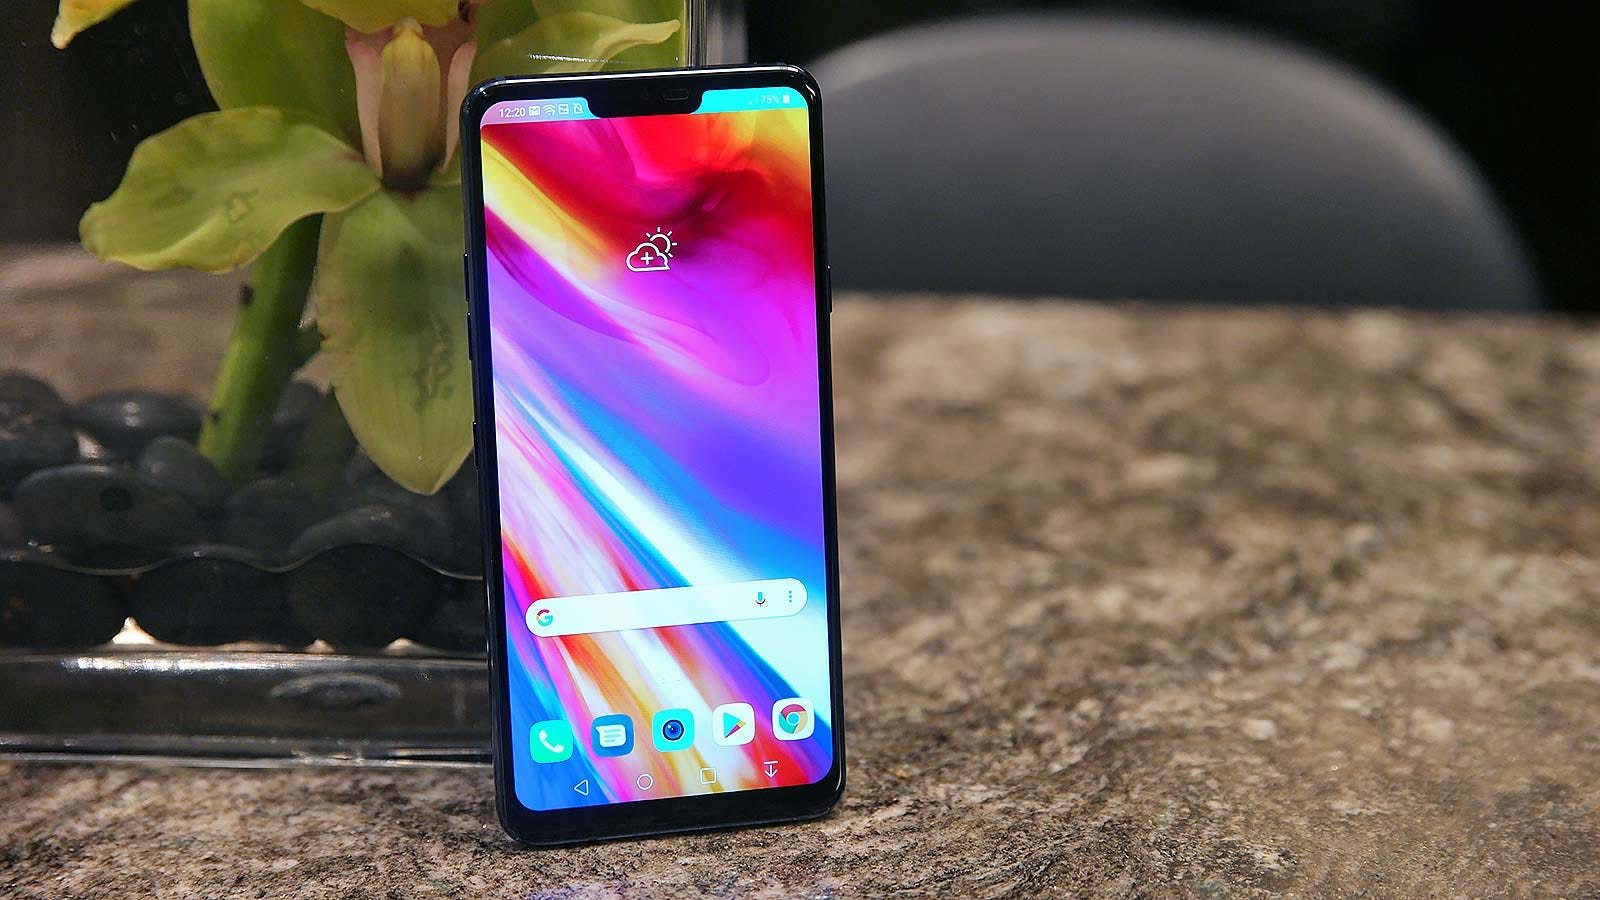 With on optional rainbow border, you can make sure that notch doesn't get overlooked.